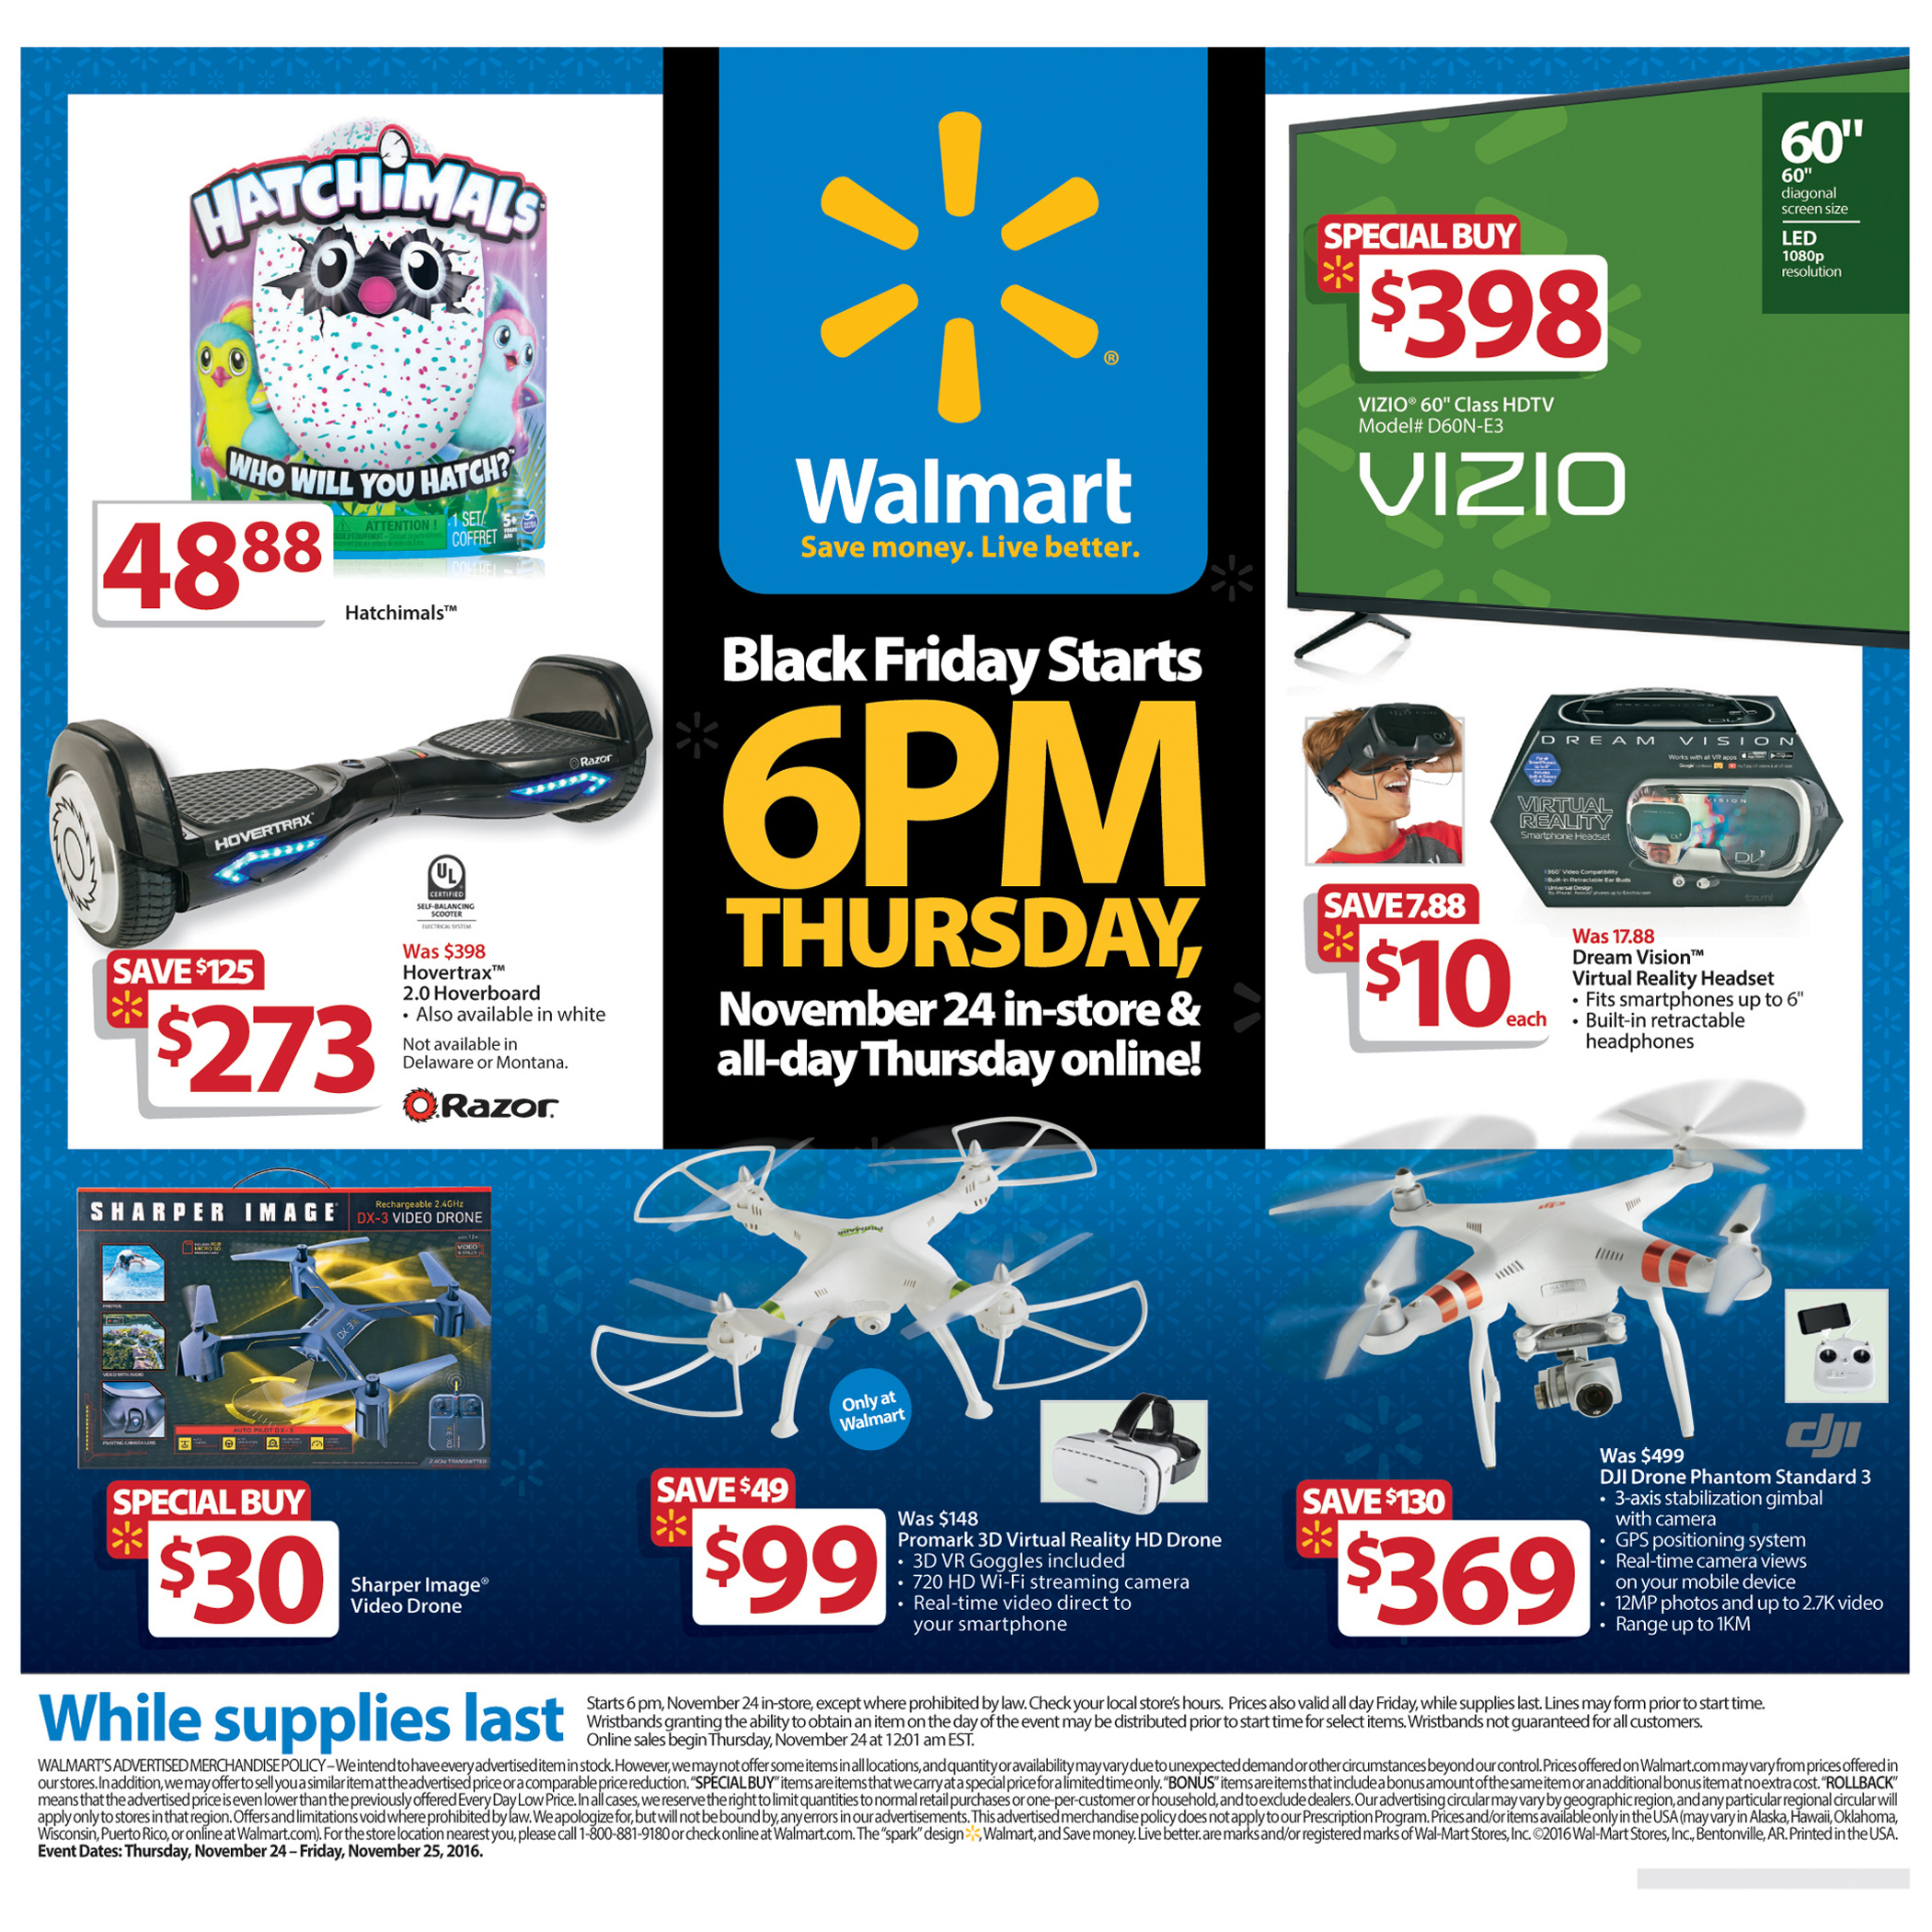 Walmart Unveils Black Friday 2016 Plans Great Deals More Availability Business Wire